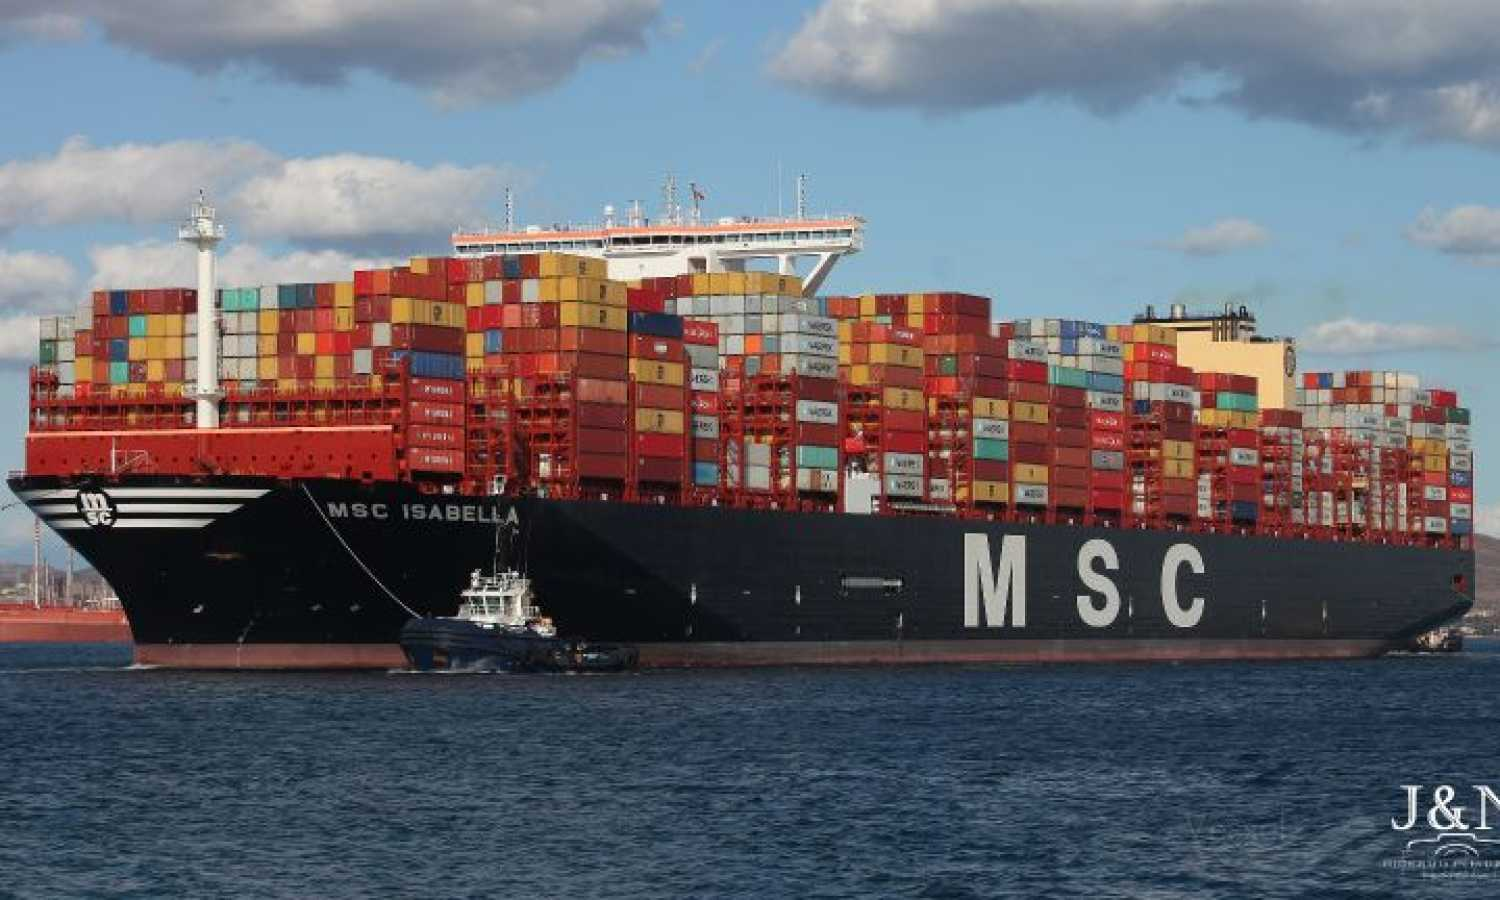 MSC Reports Network Outage - Suspecting Cyber Attack